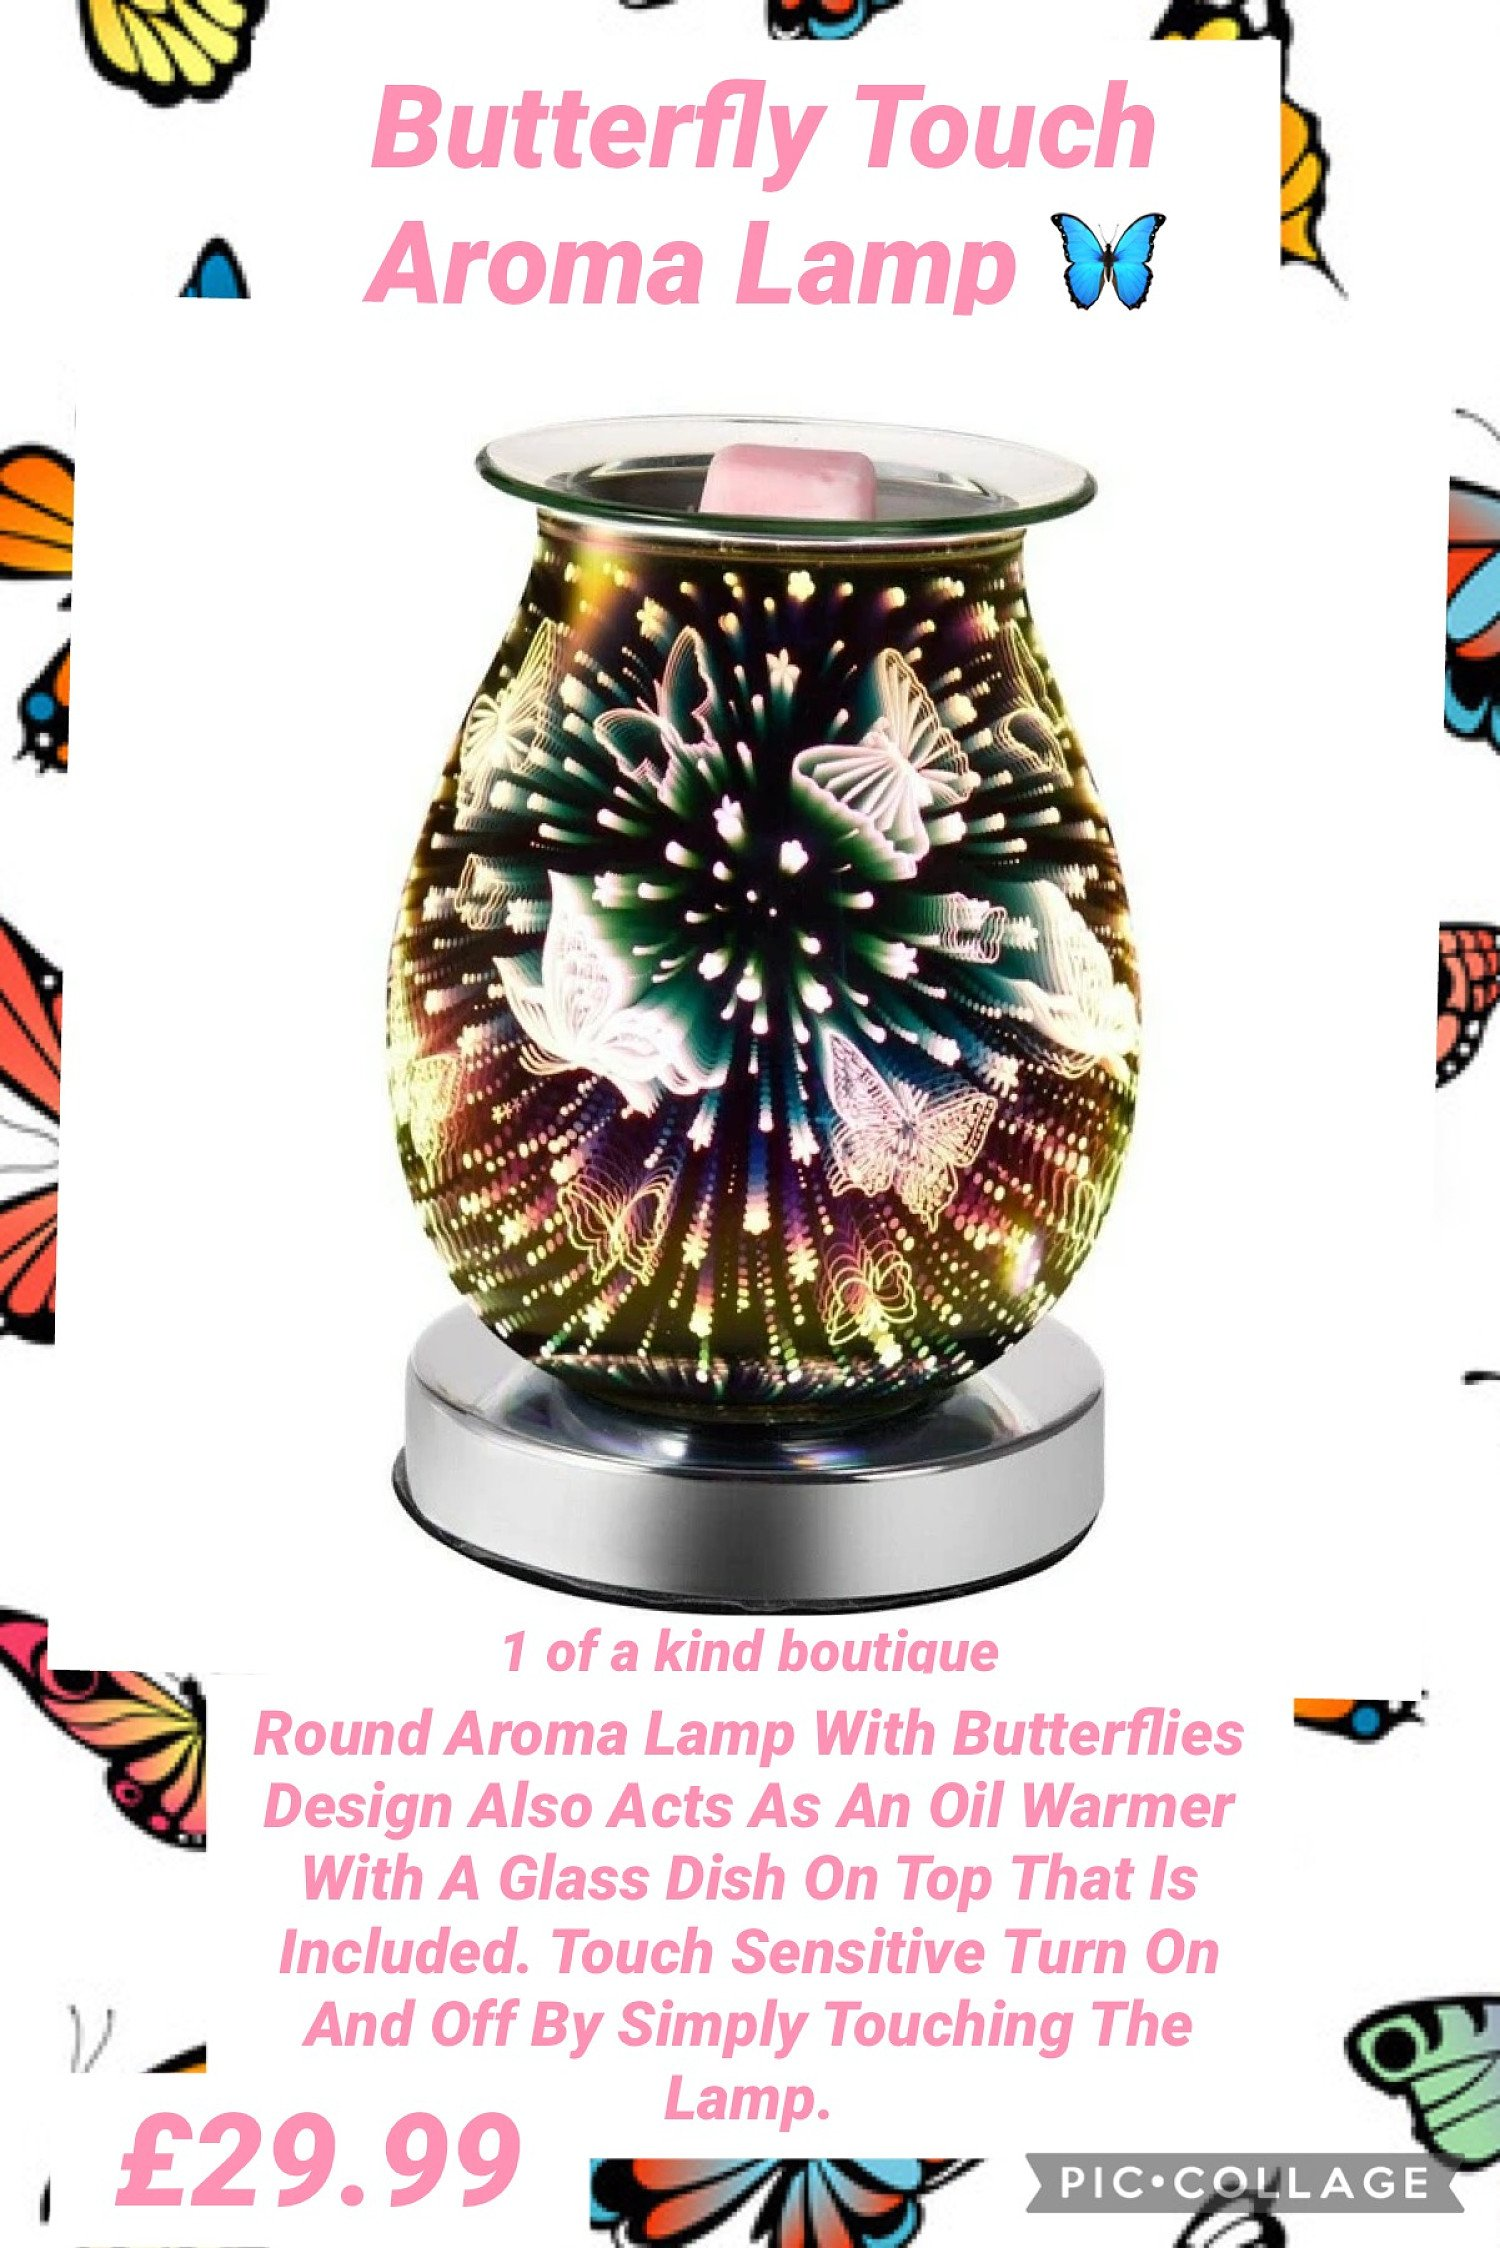 Butterfly Touch Aroma Lamp Free Postage